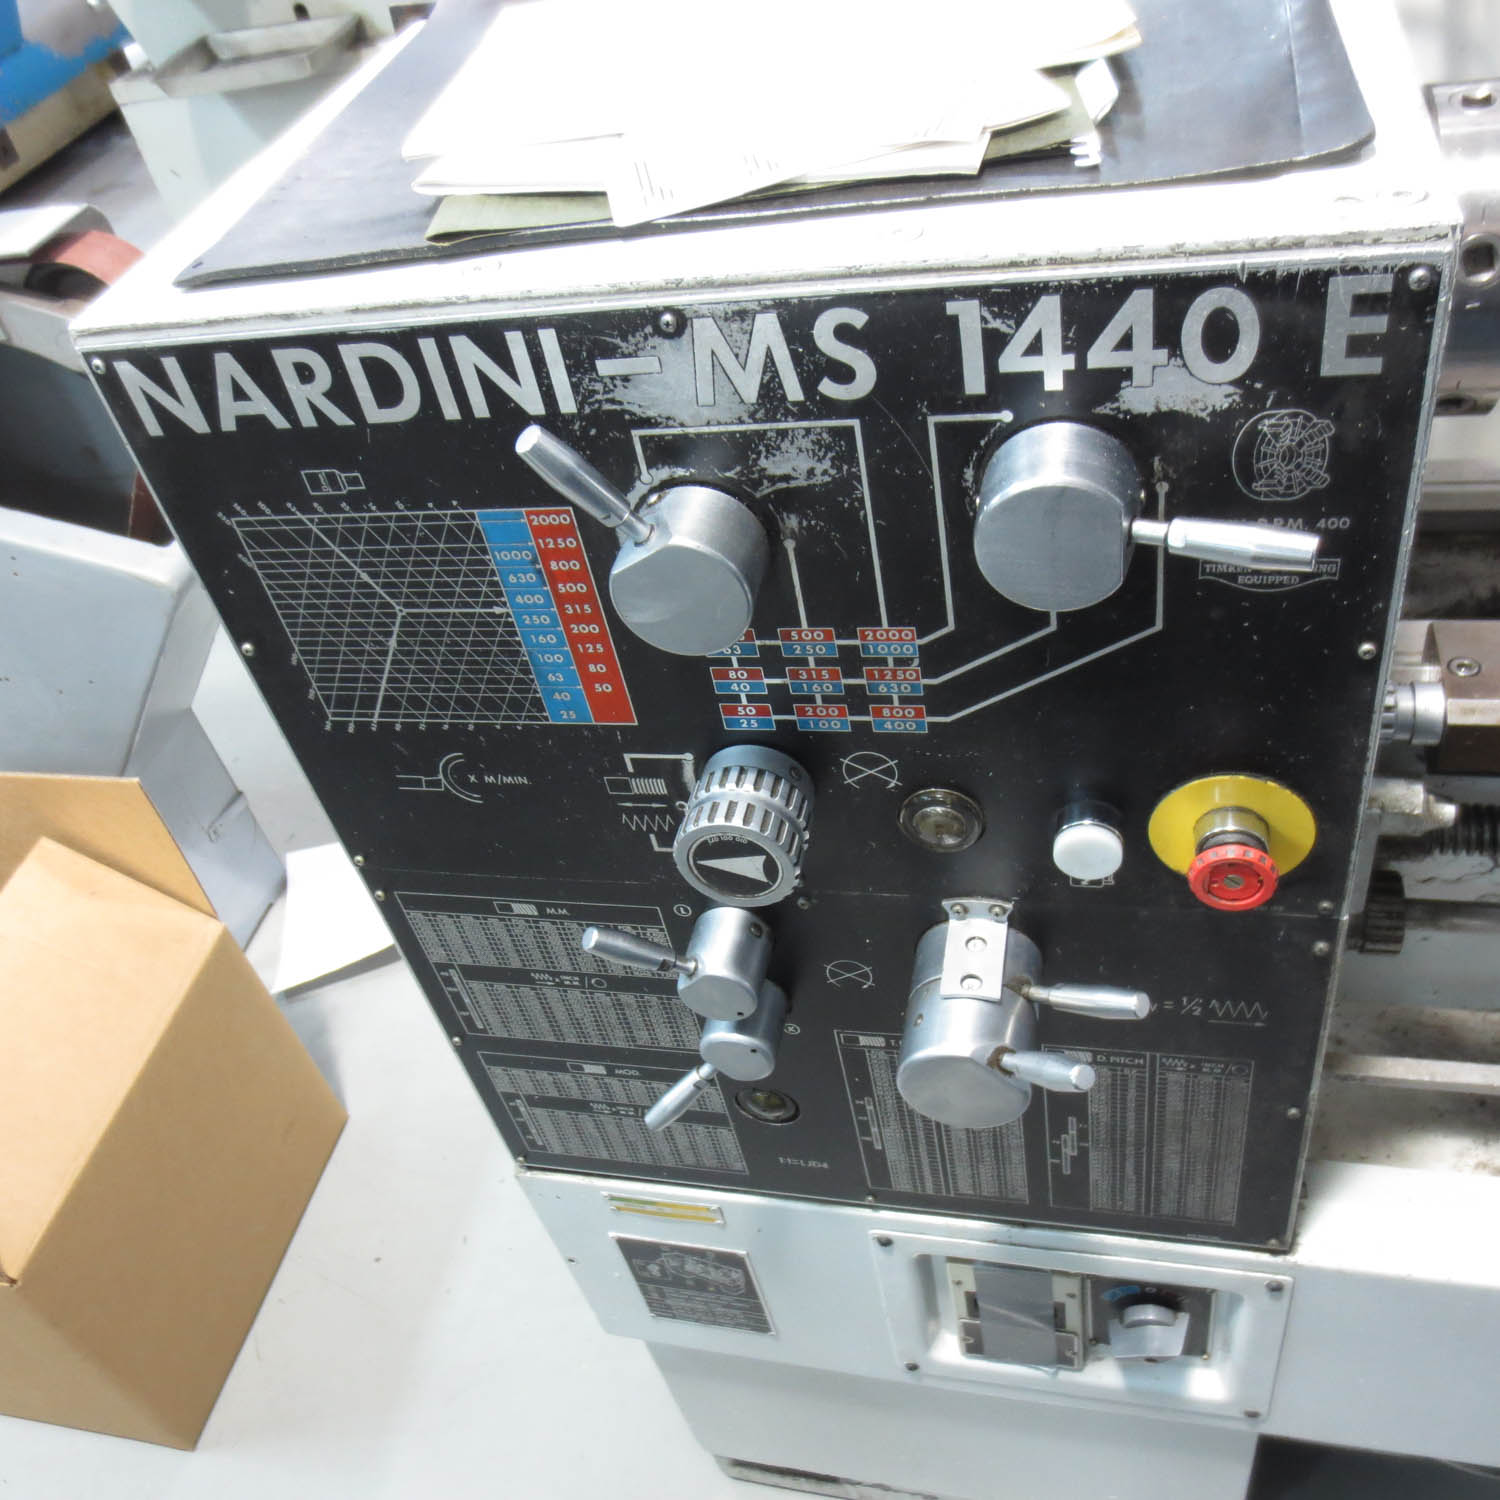 Lot 23 - NARDINI MS 1440E LATHE, 25-2000 SPINDLE SPEEDS, 1-1/2'' HOLE, 7'' SWING, 42'' CENTER TO CENTER,